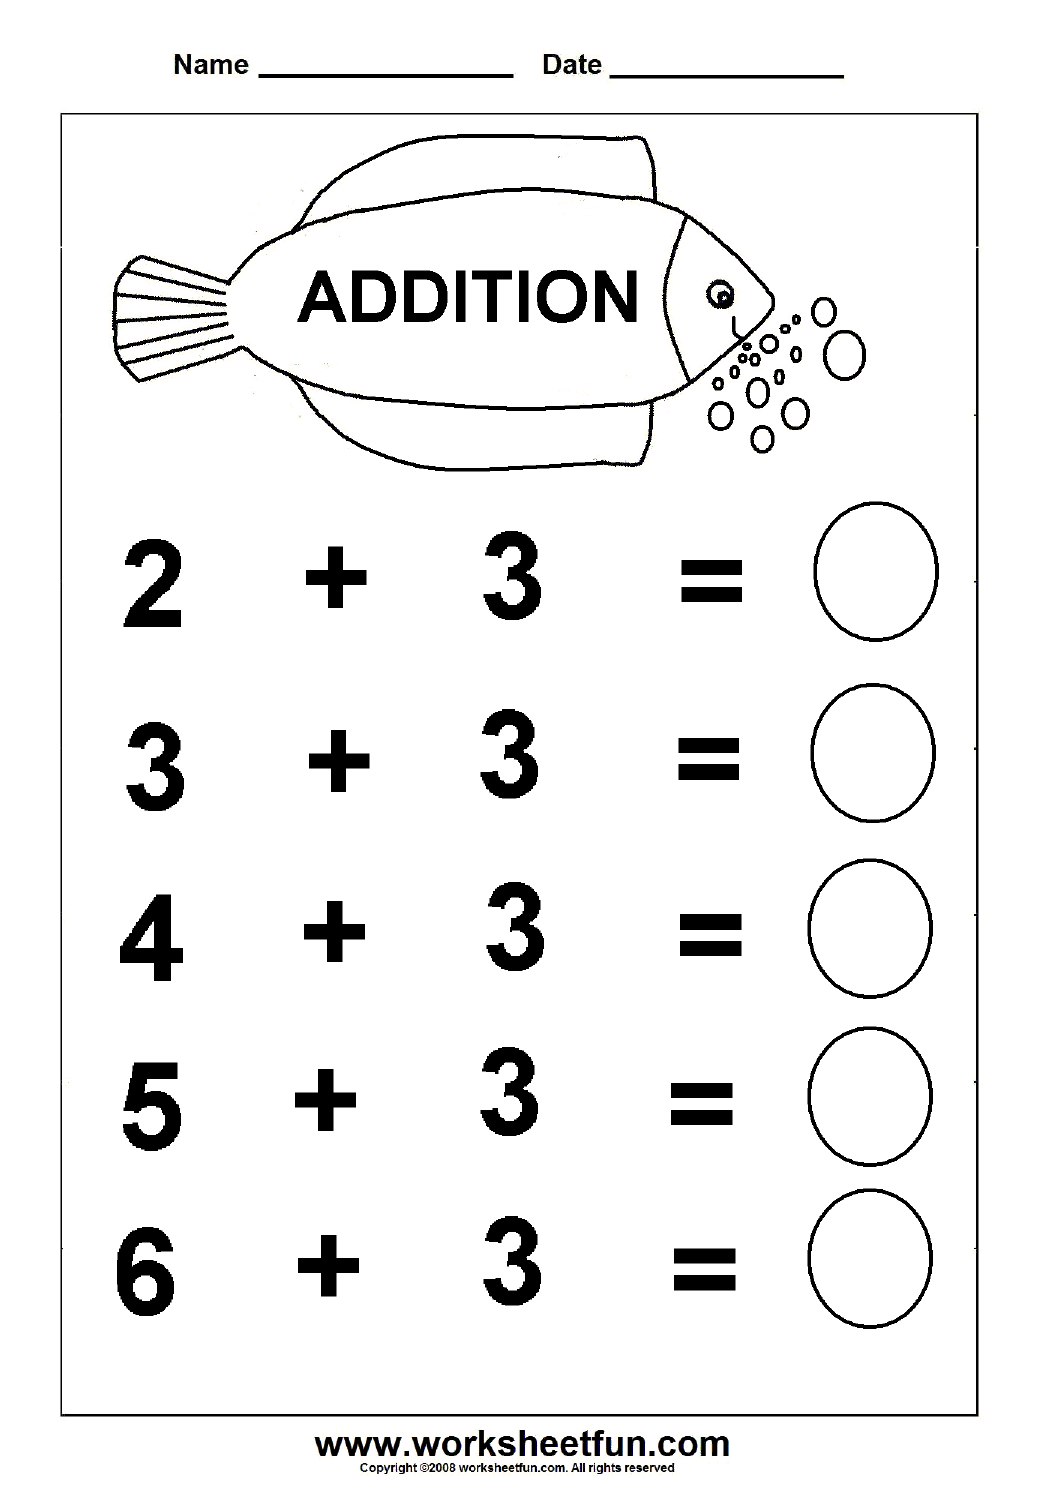 Free Addition And Subtraction Worksheets Pictures